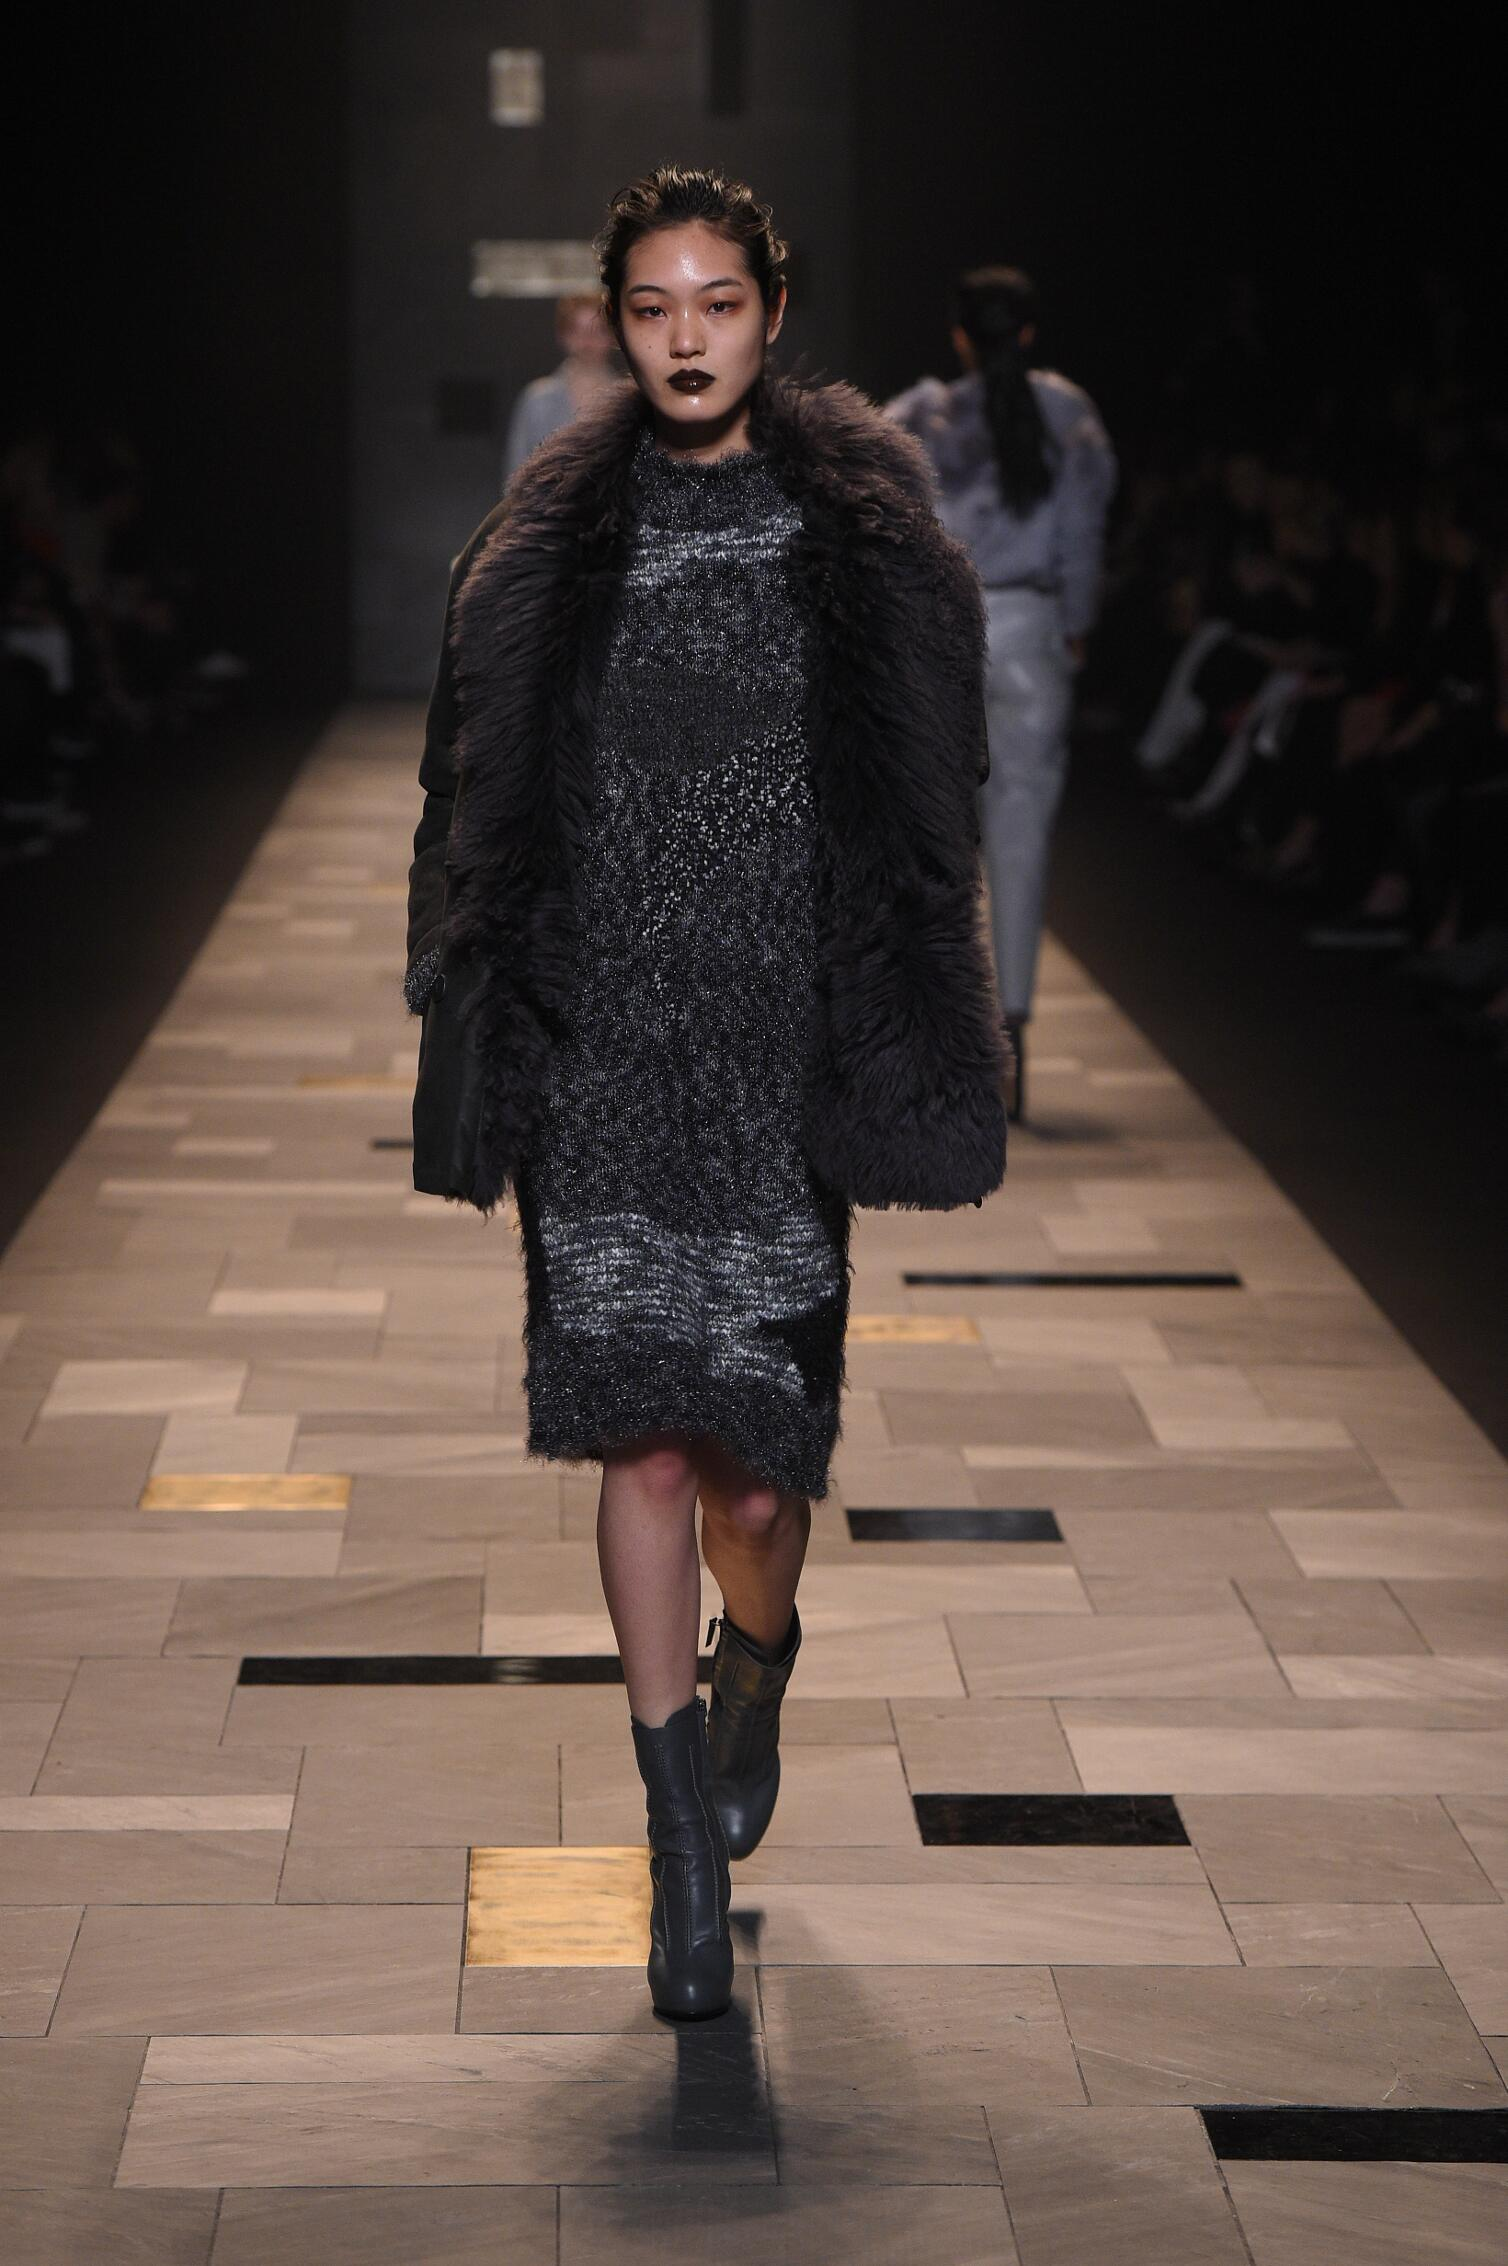 Runway Trussardi Fall Winter 2015 16 Women's Collection Milan Fashion Week